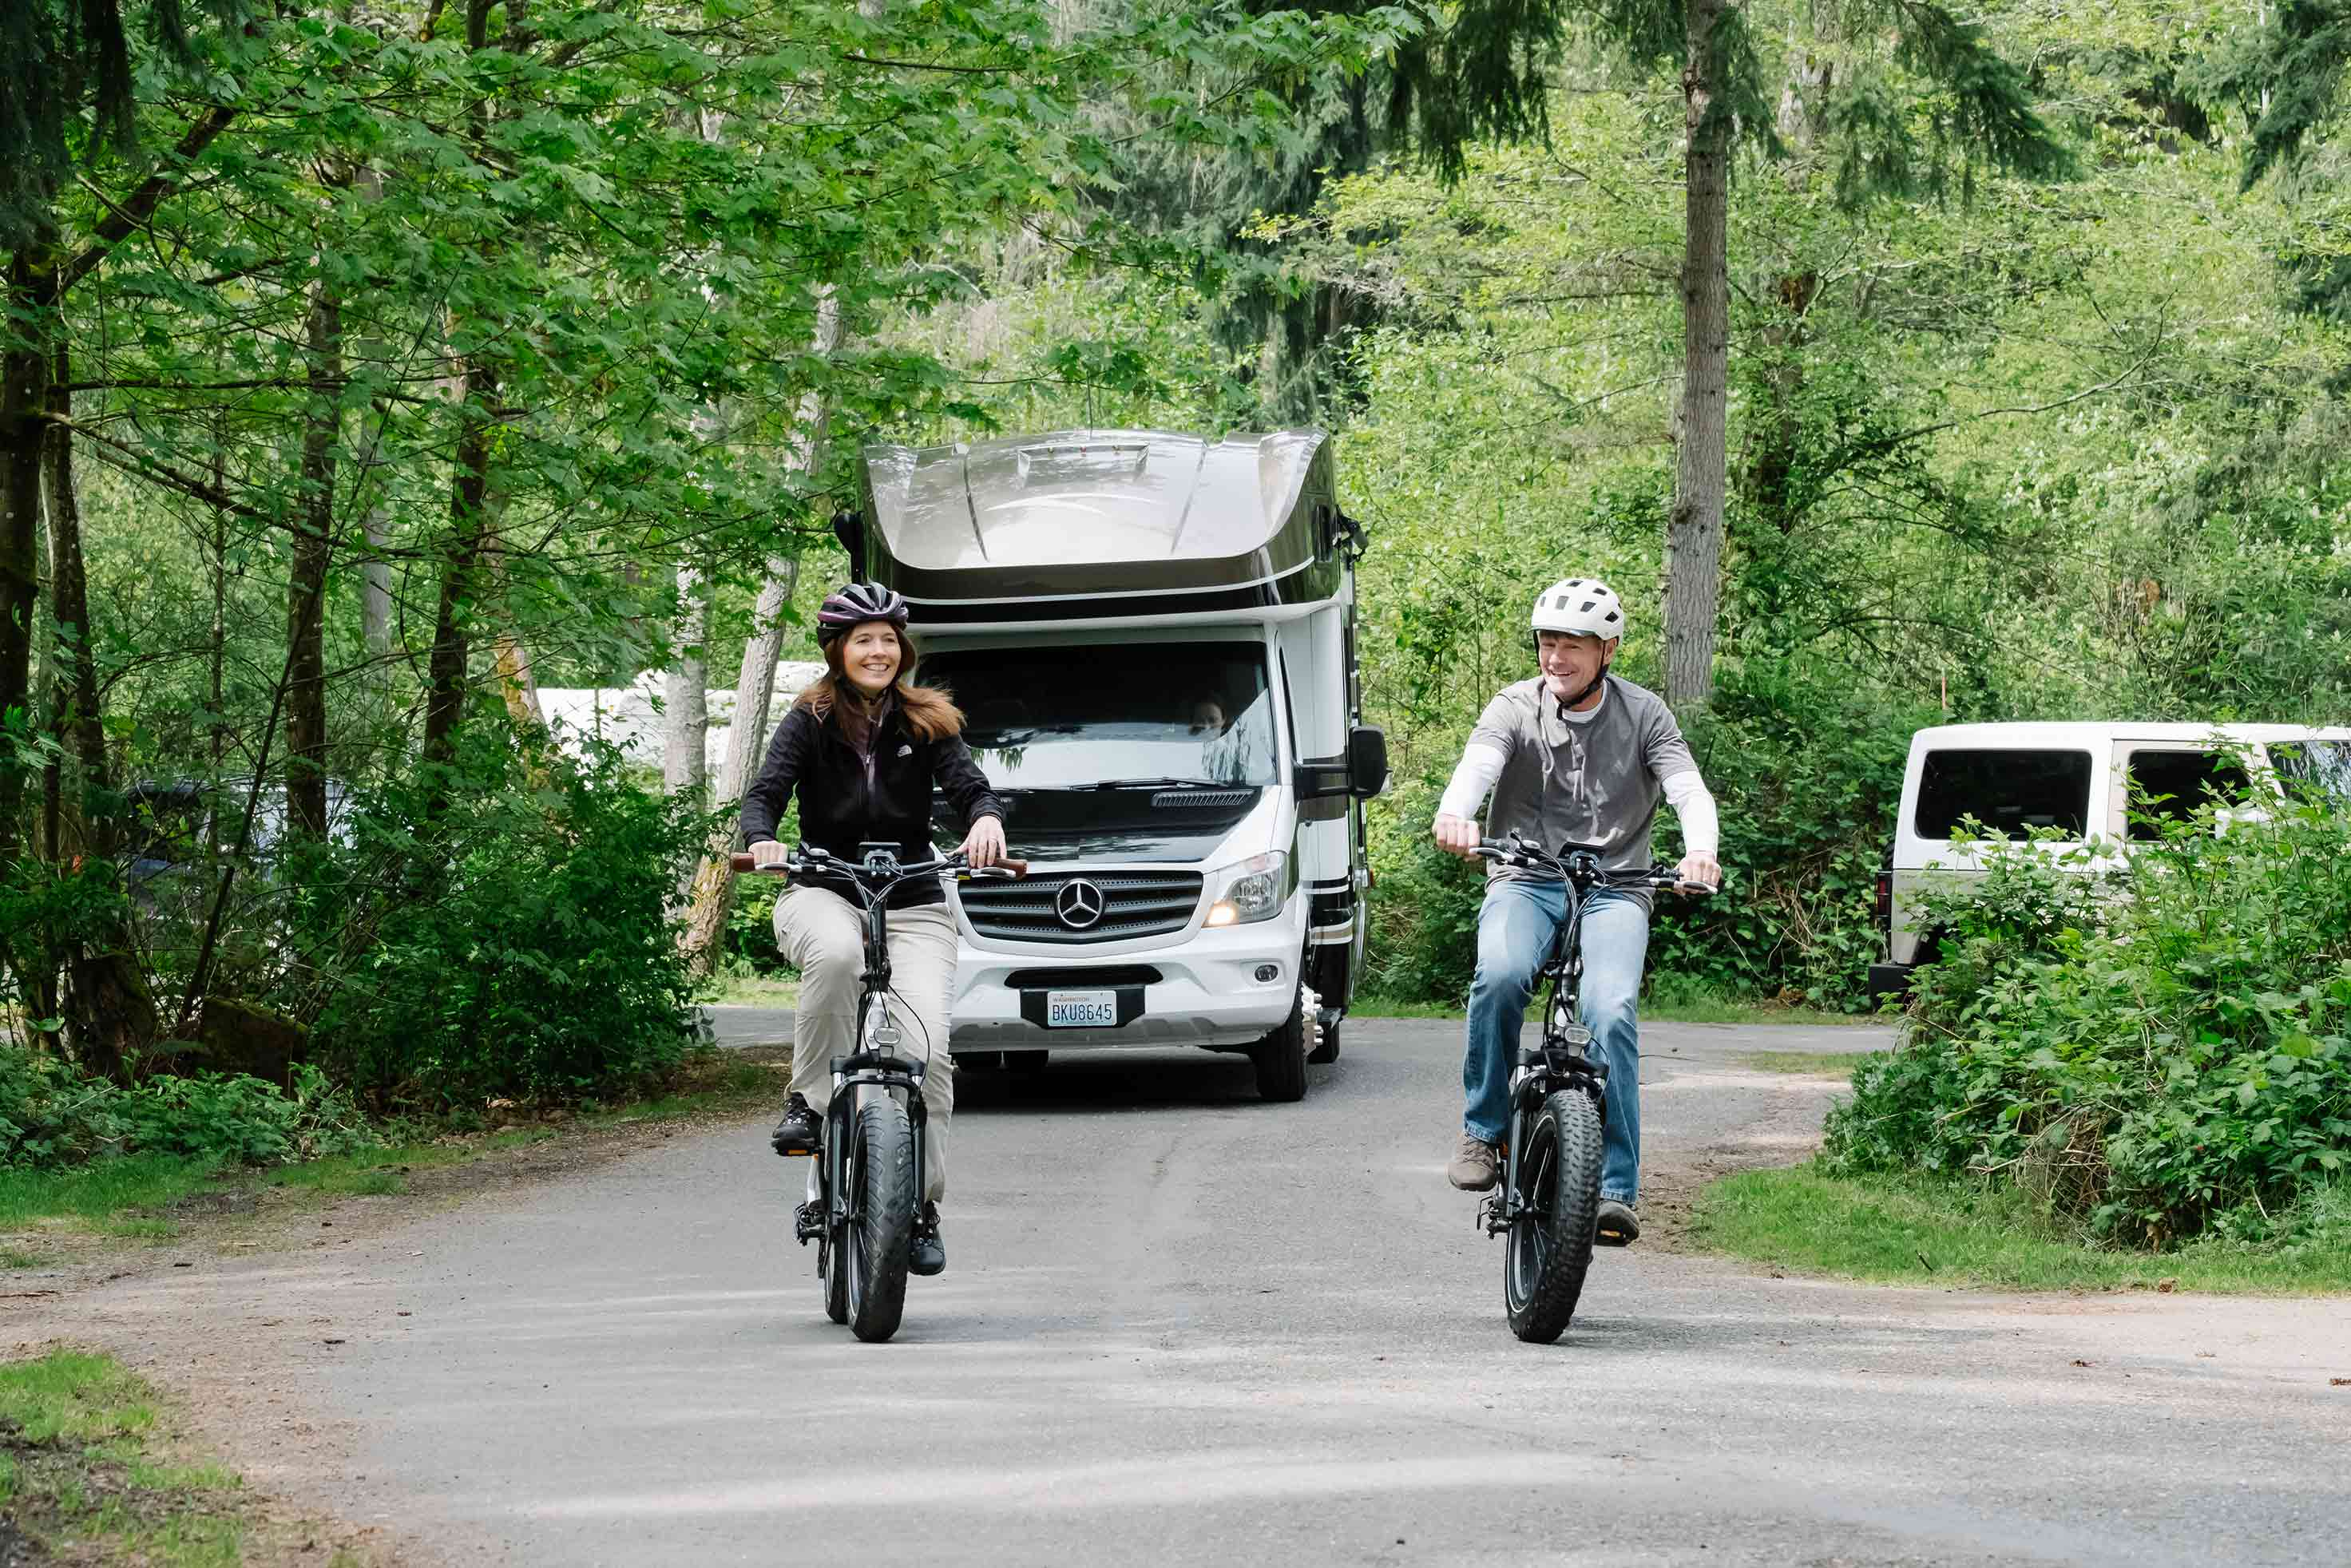 Two people load up a RadMini onto an RV.